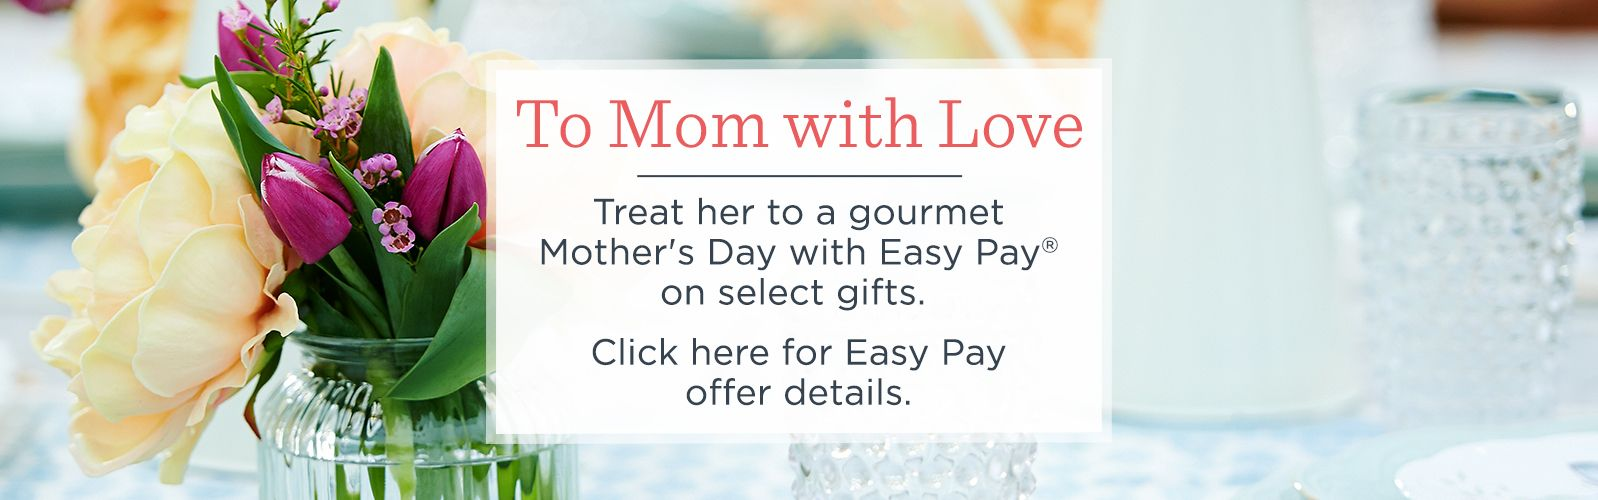 To Mom with Love. Treat her to a gourmet Mother's Day with Easy Pay® on select gifts.  Click here for Easy Pay offer details.